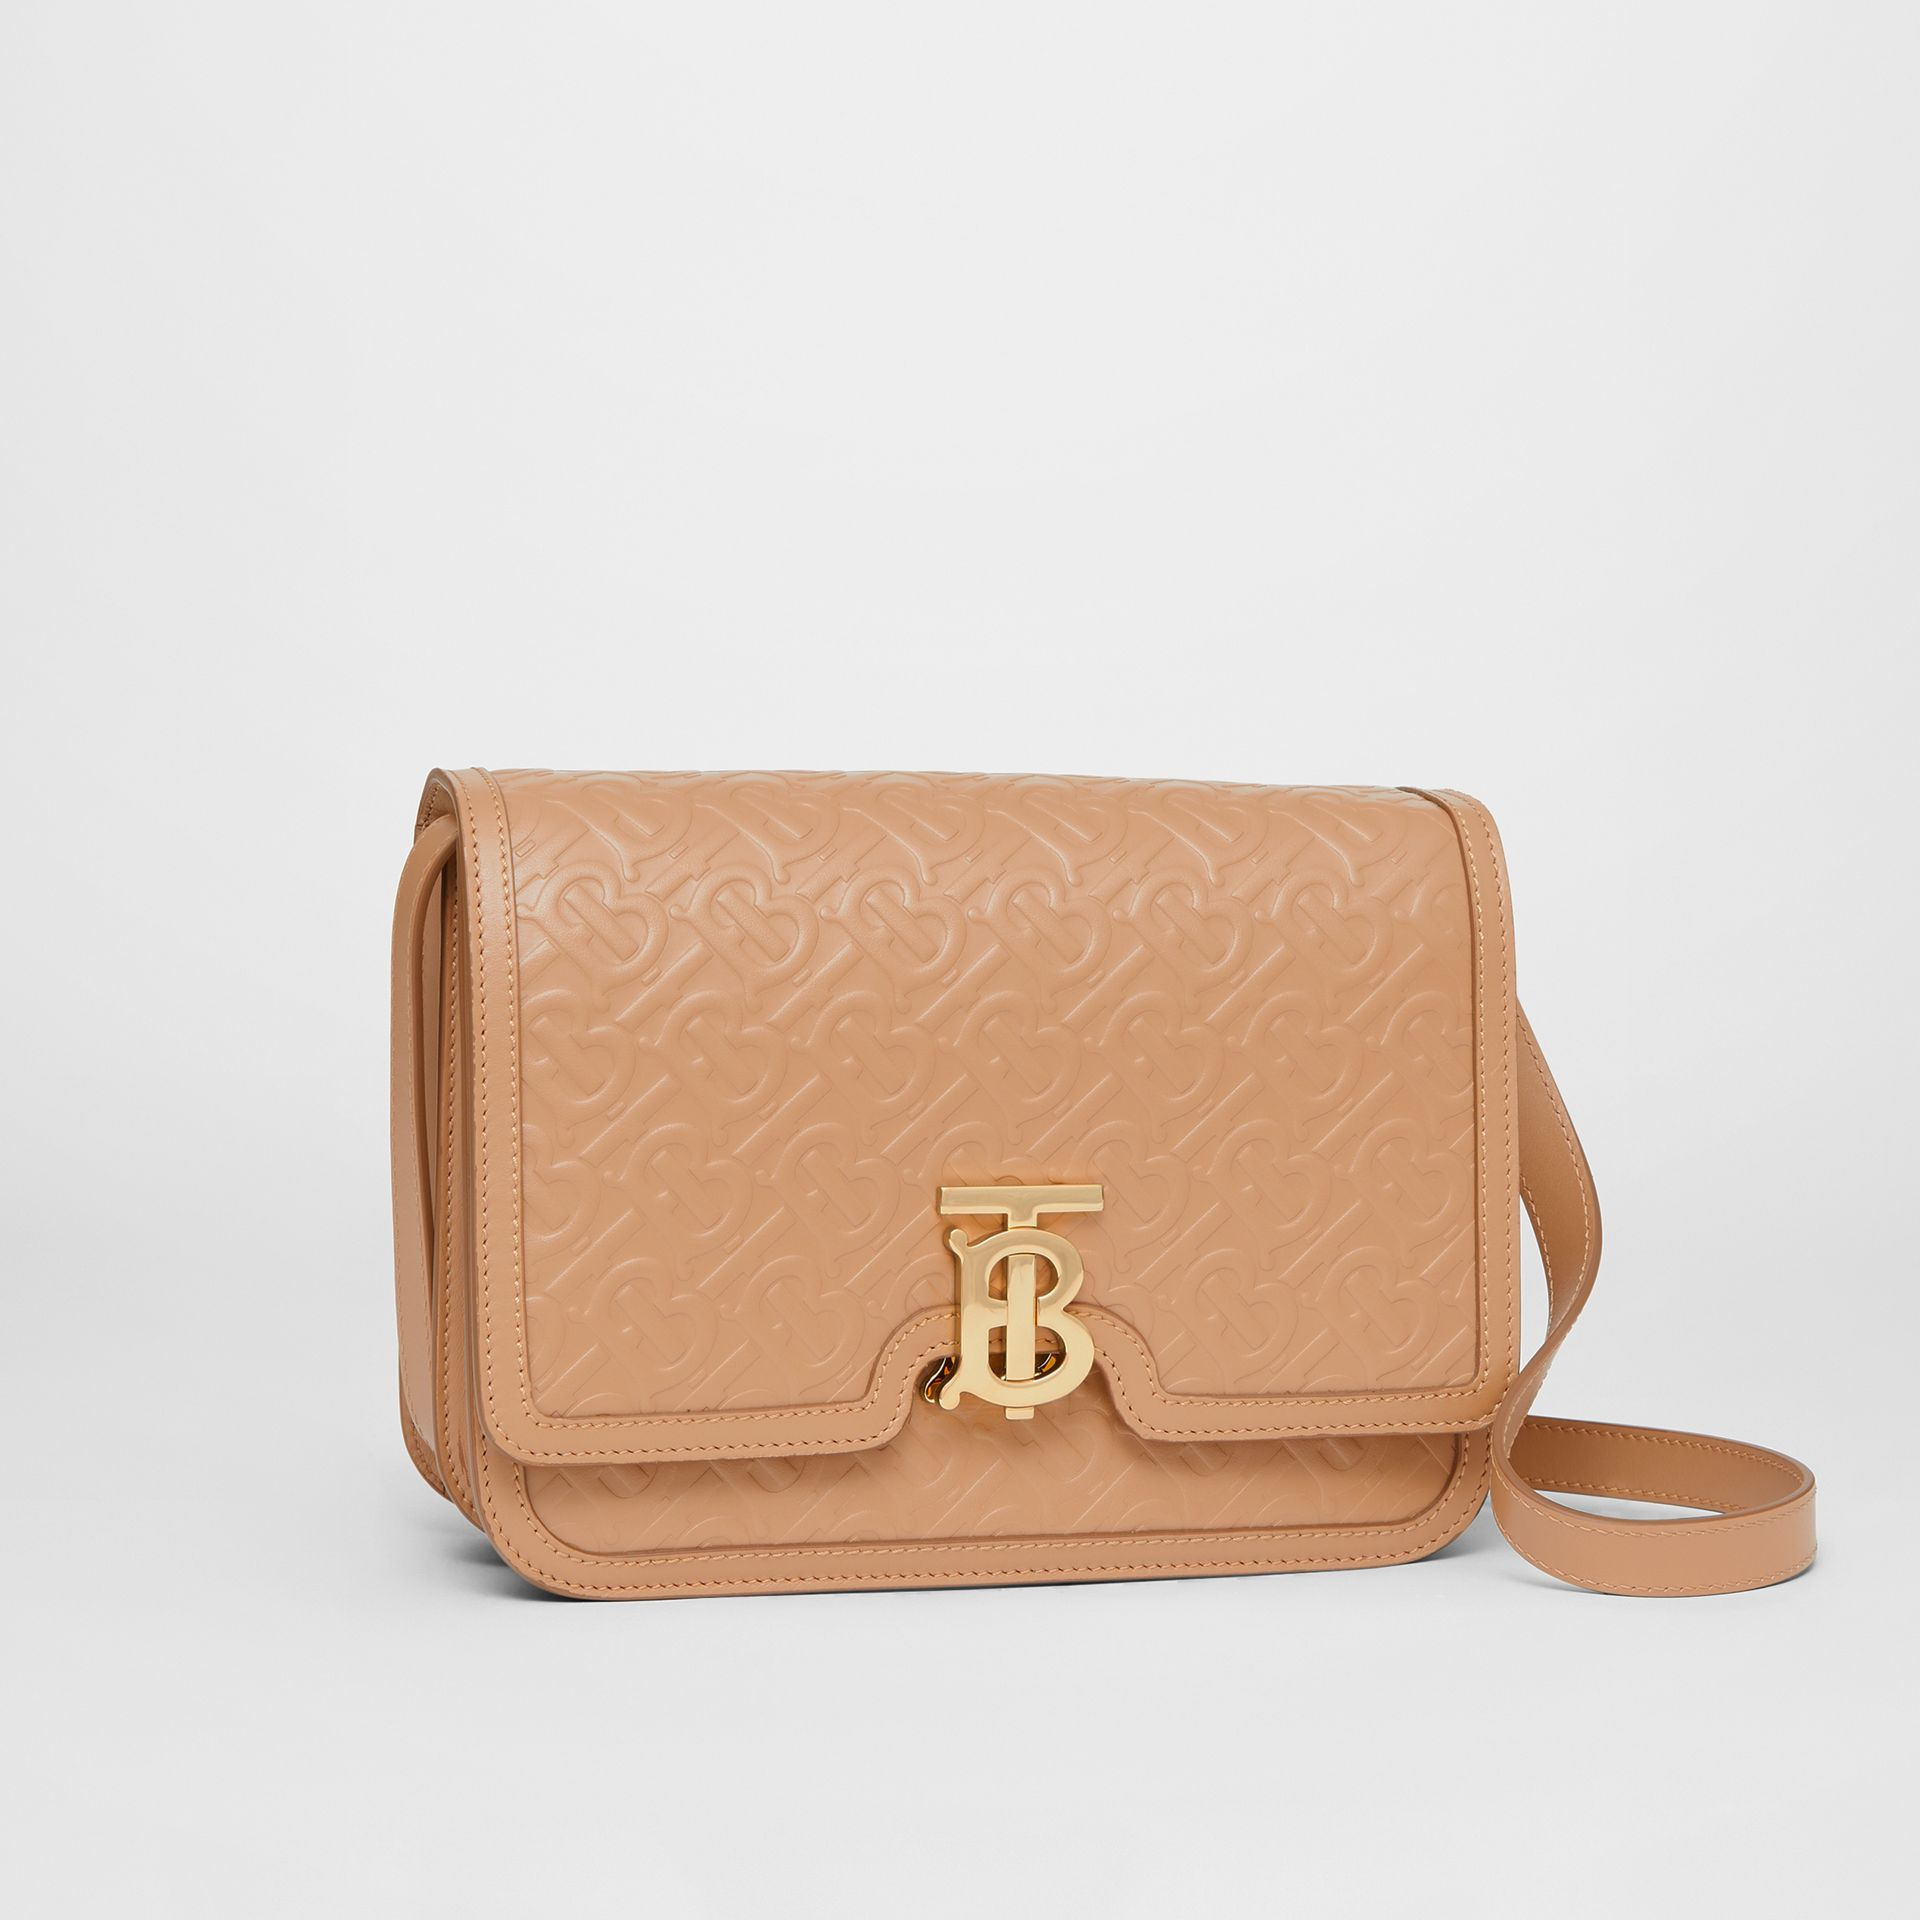 Medium Monogram Leather TB Bag in Light Camel - Women | Burberry - gallery image 6